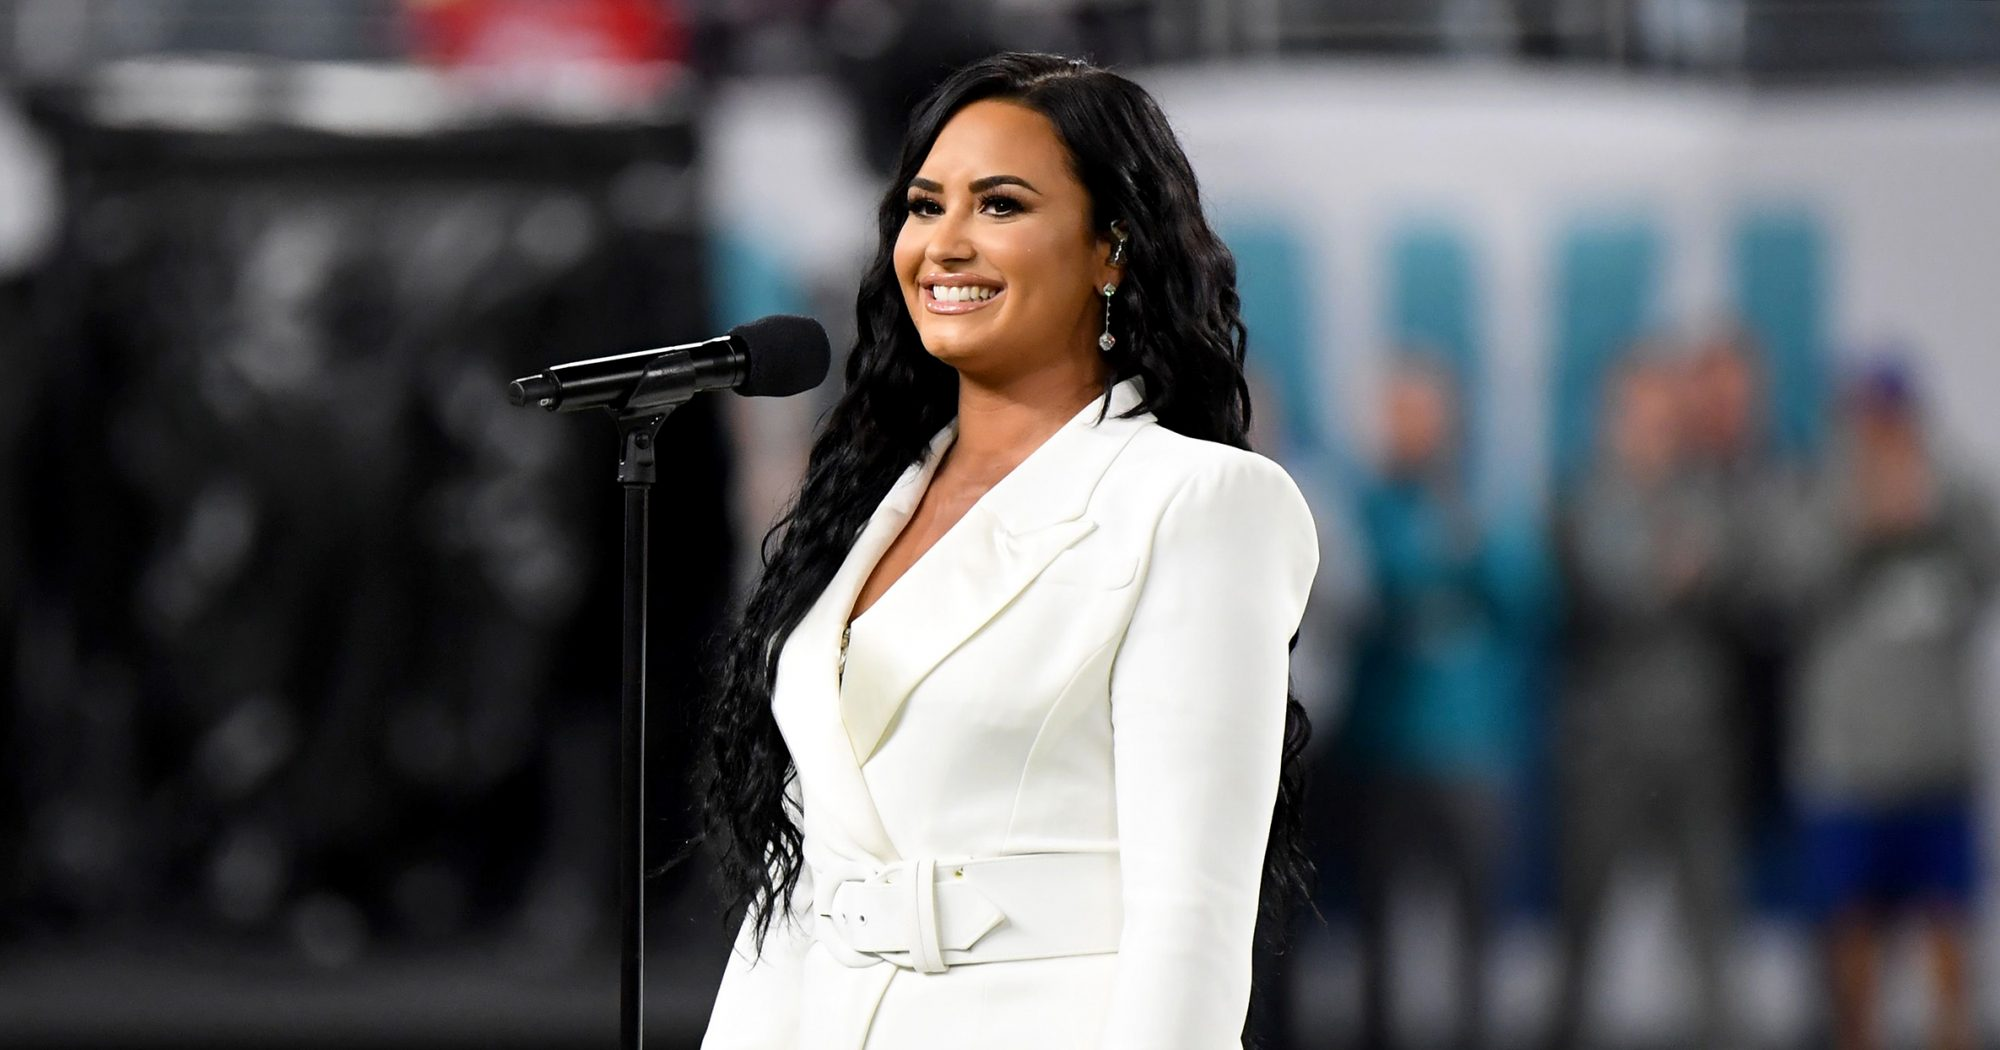 Demi Lovato performing at the 2020 Super Bowl